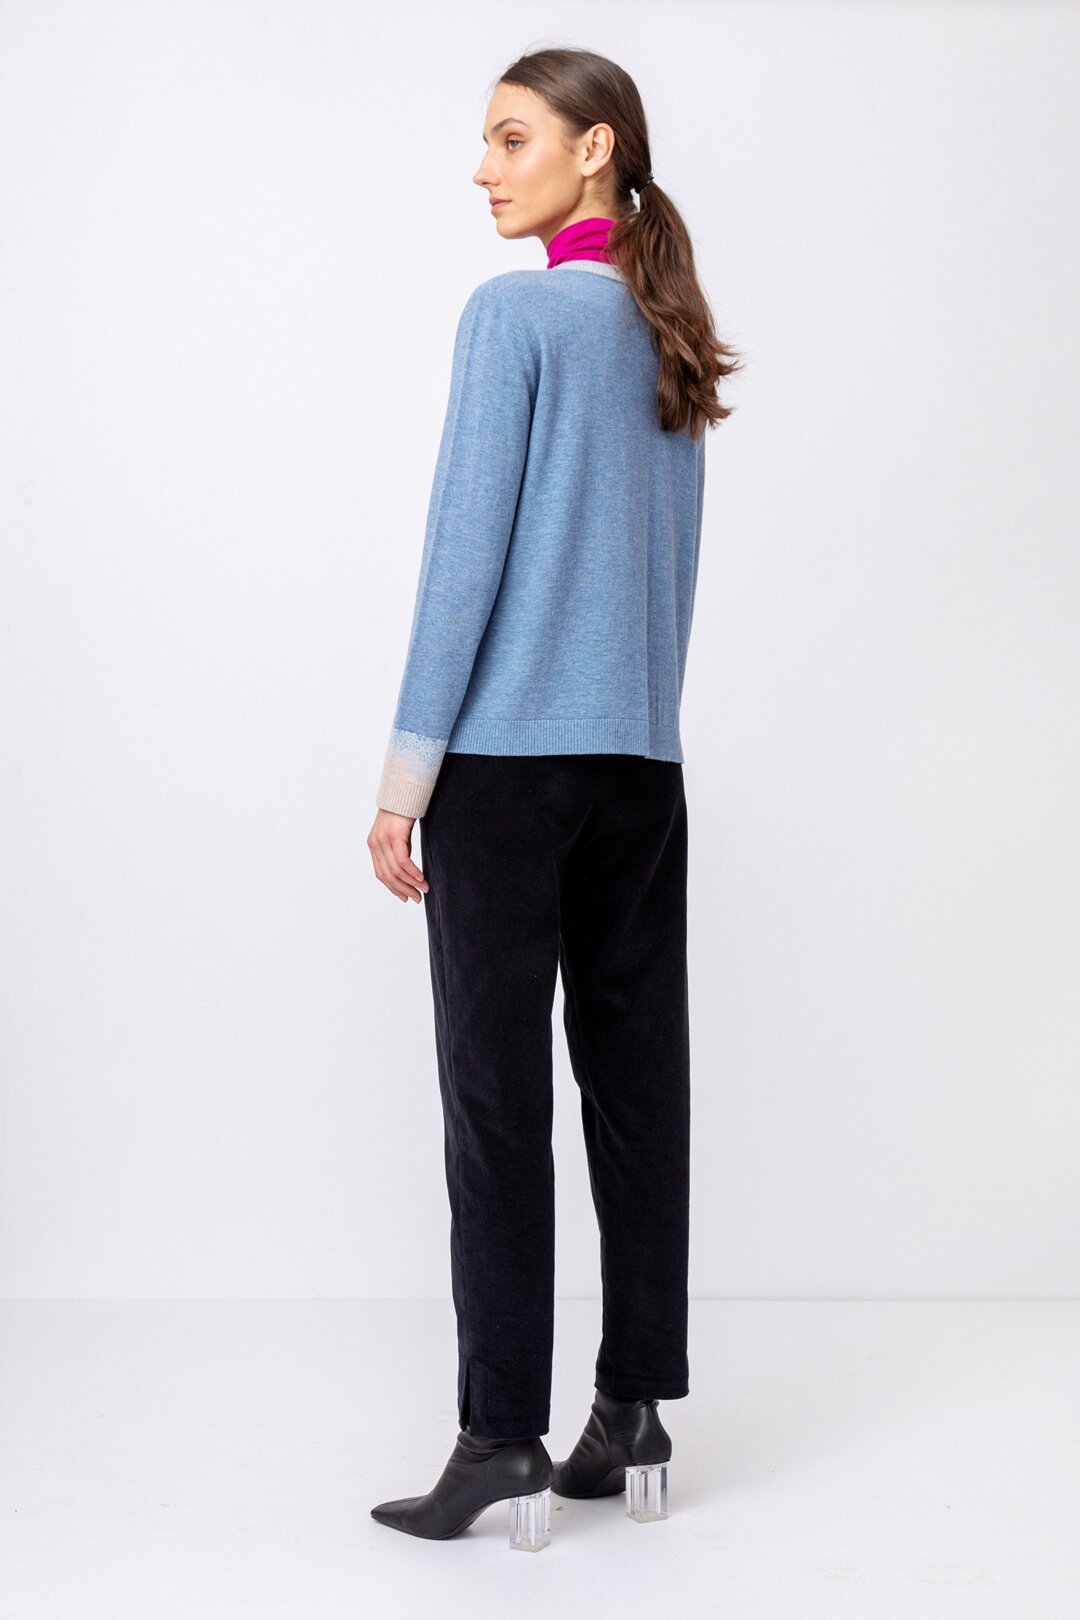 outfit-7c8a8903